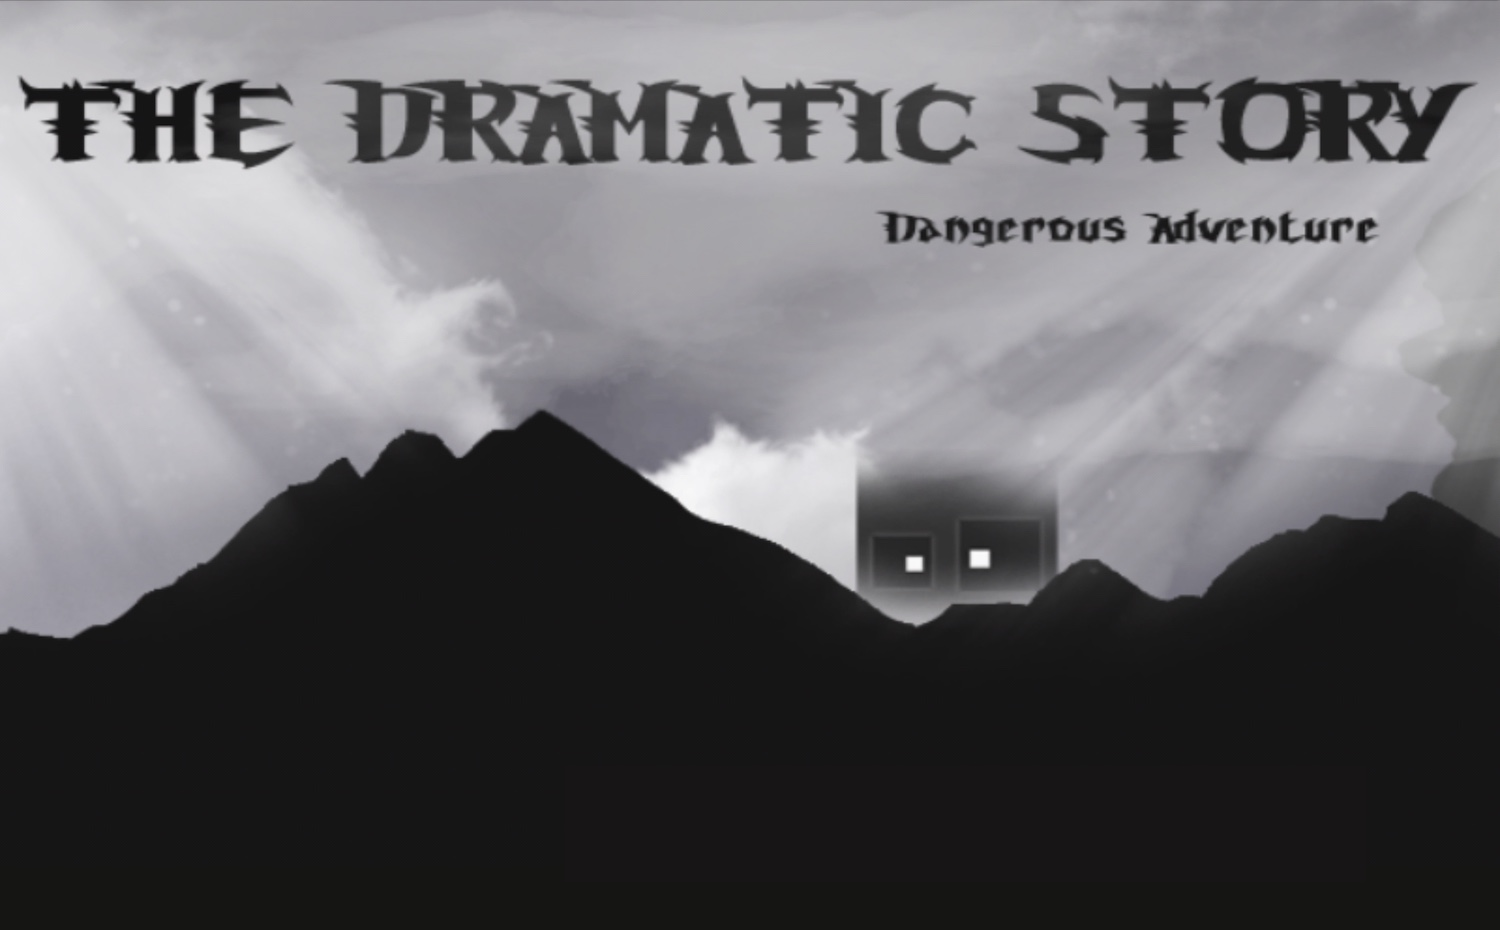 The Dramatic Story: Dangerous Adventure — бородатый платформер